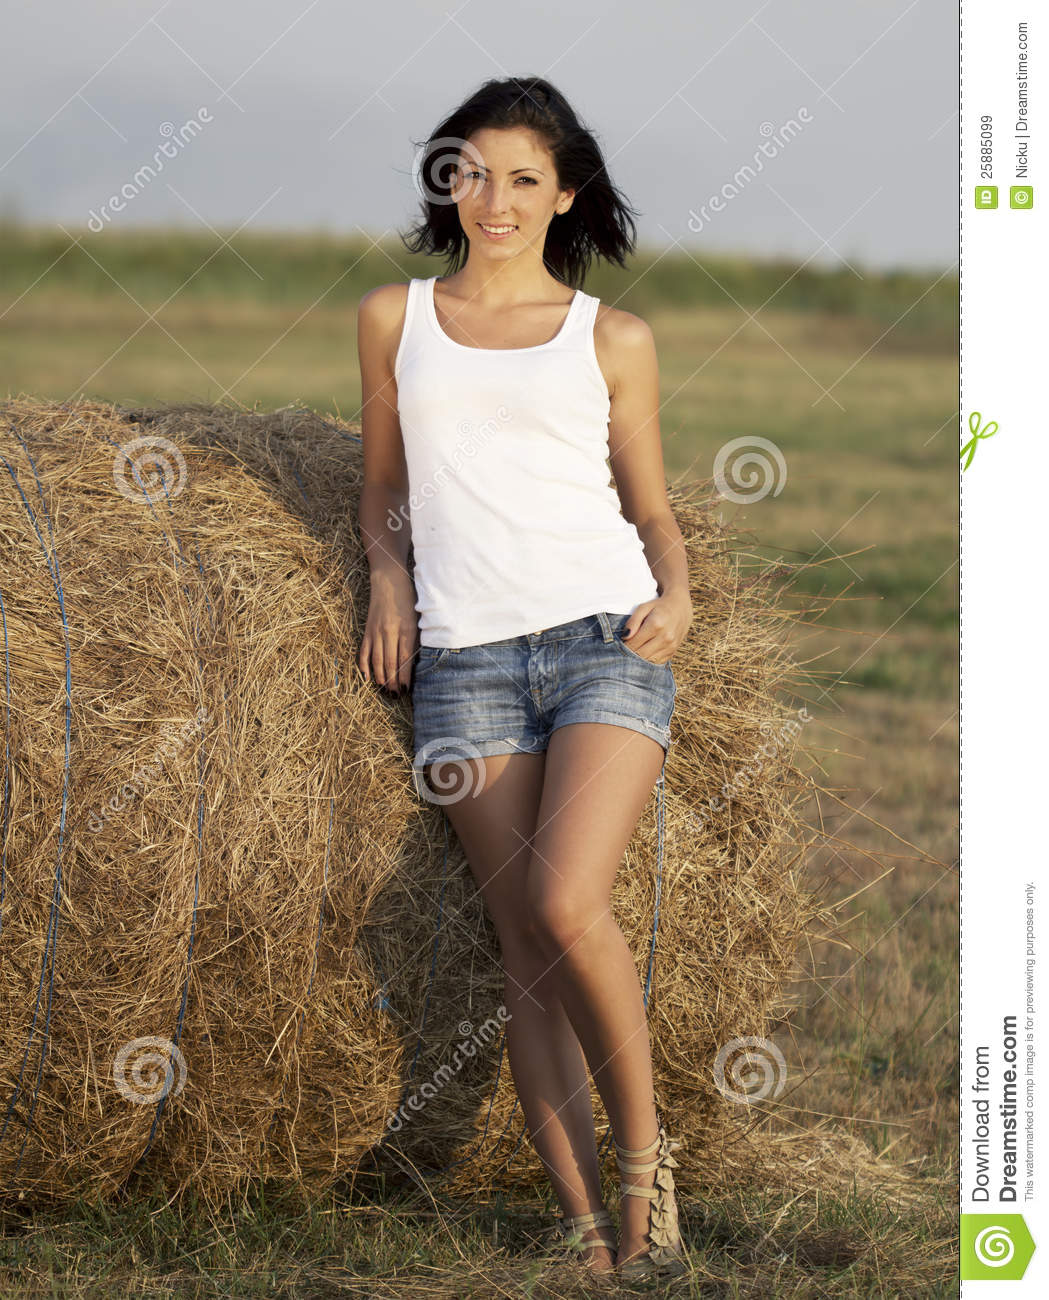 Cute Country Girl Royalty Free Stock Images - Image: 25885099